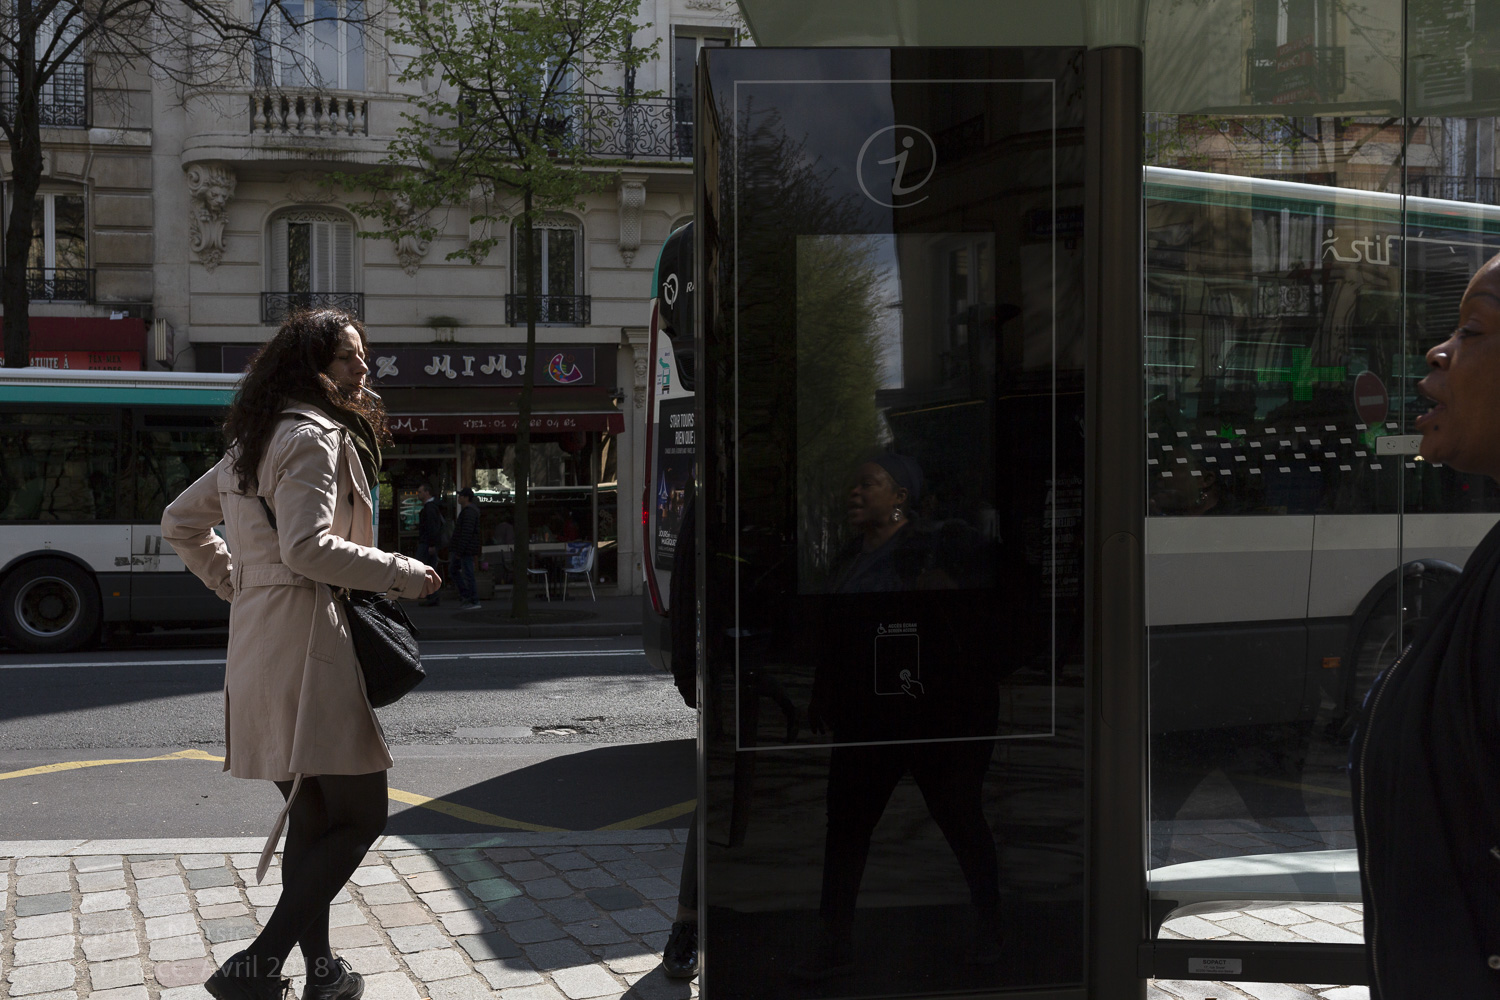 Streetphotography, photo de rue. Paris. France.